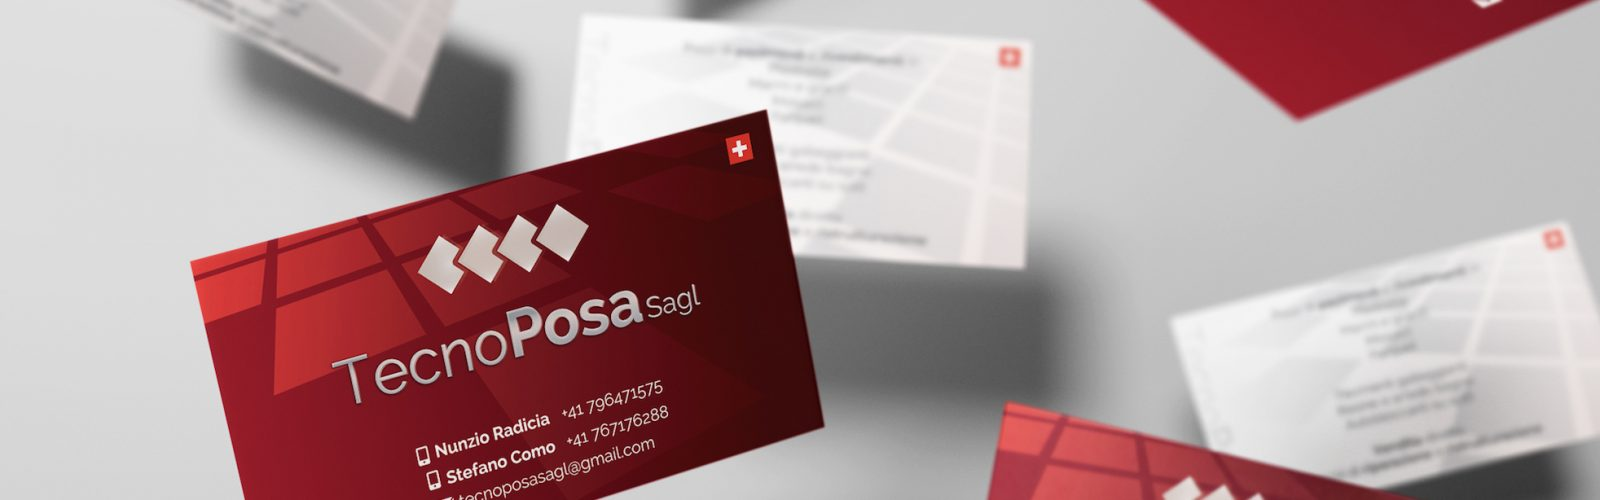 business-card-tecnoposa-graphic-by-melographicstudio